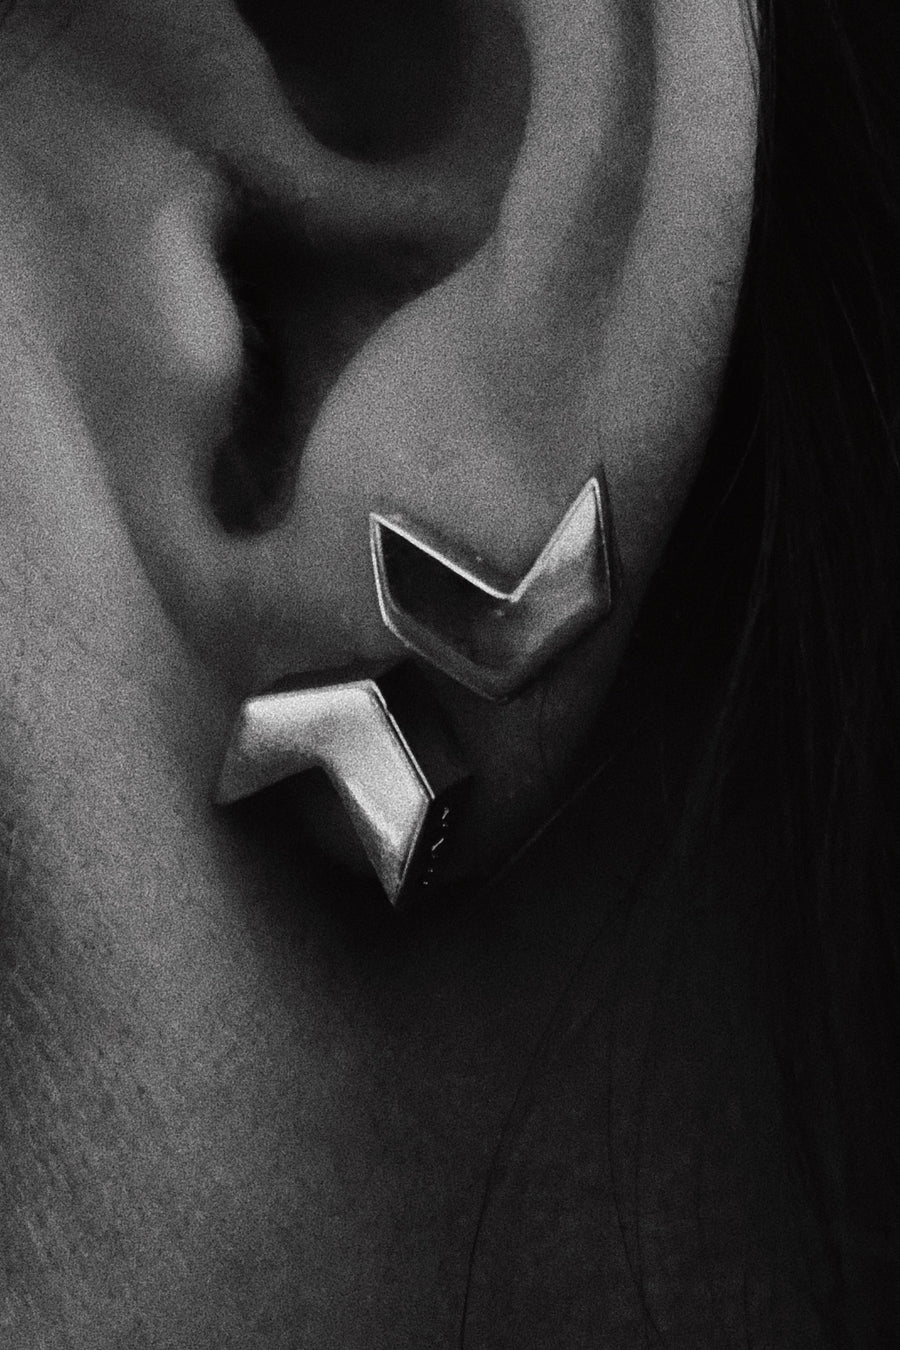 NVII Earring - NOMAD VII X ANNE BOWEN